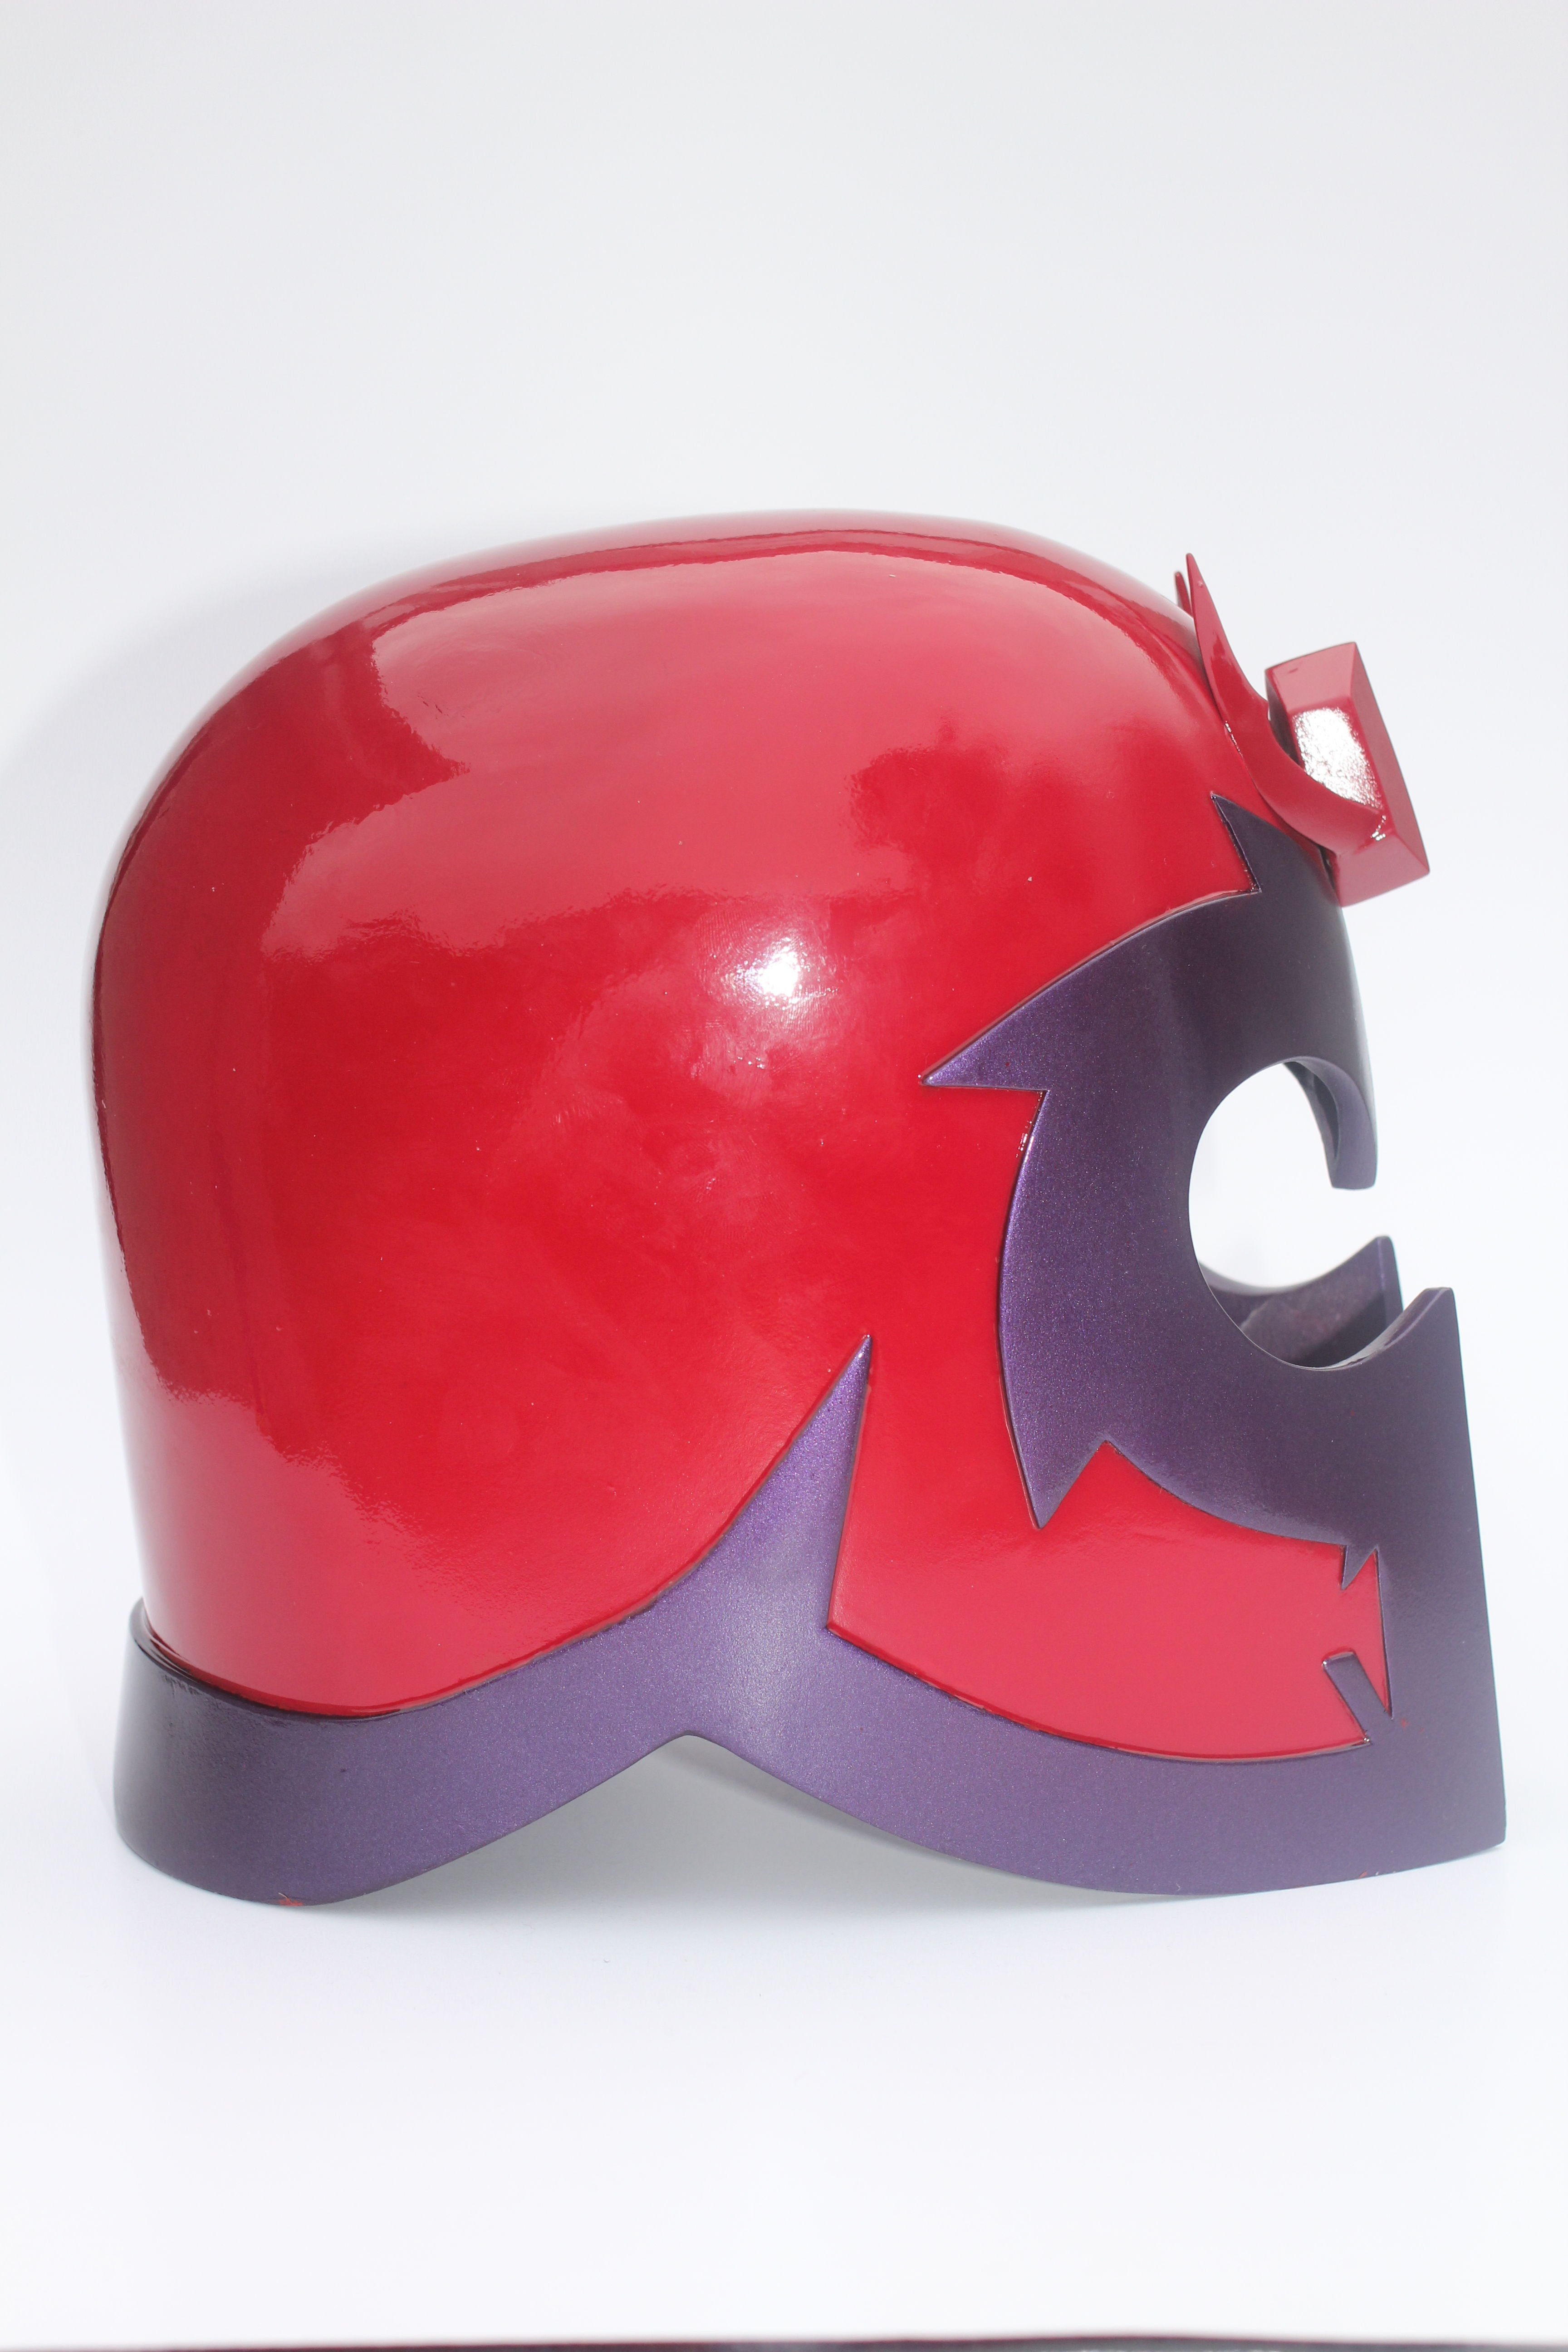 Picture of Finished Helmet